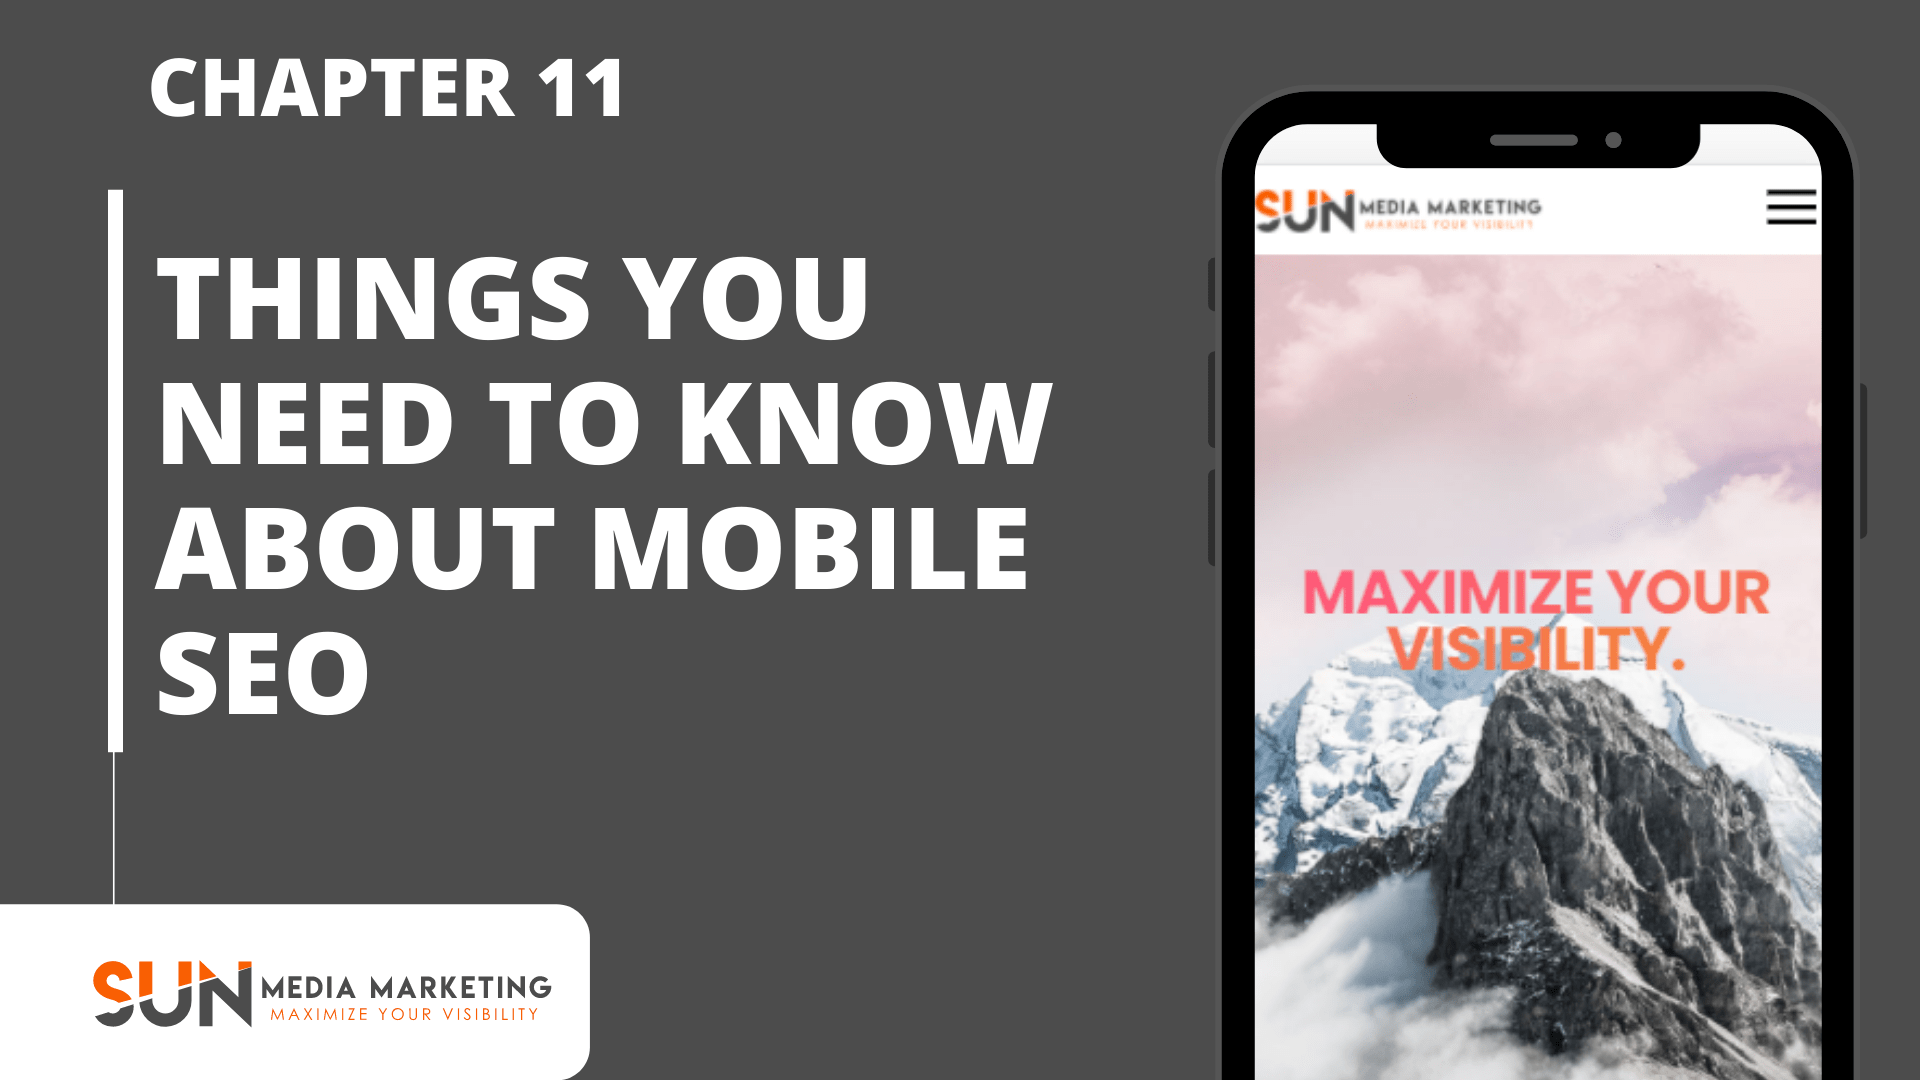 Things You Need to Know About Mobile SEO